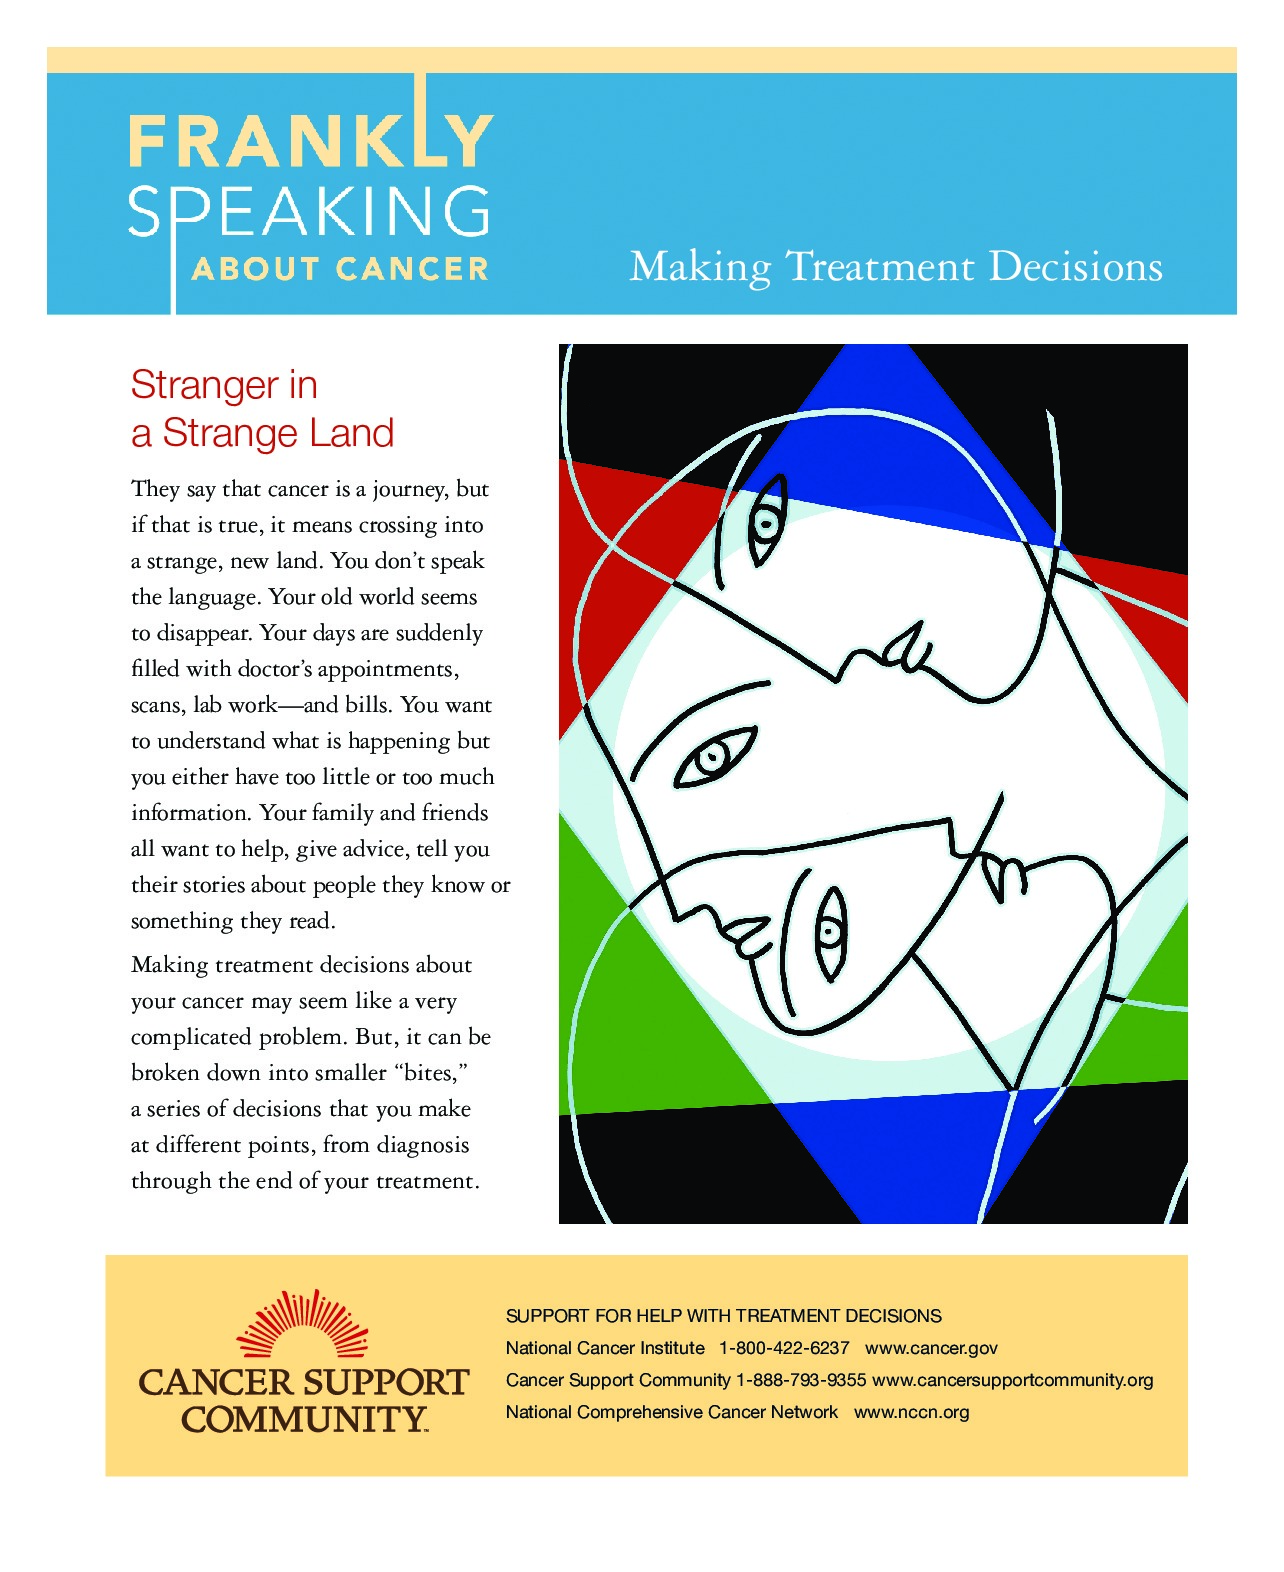 Frankly Speaking About Cancer: Managing Treatment Decisions